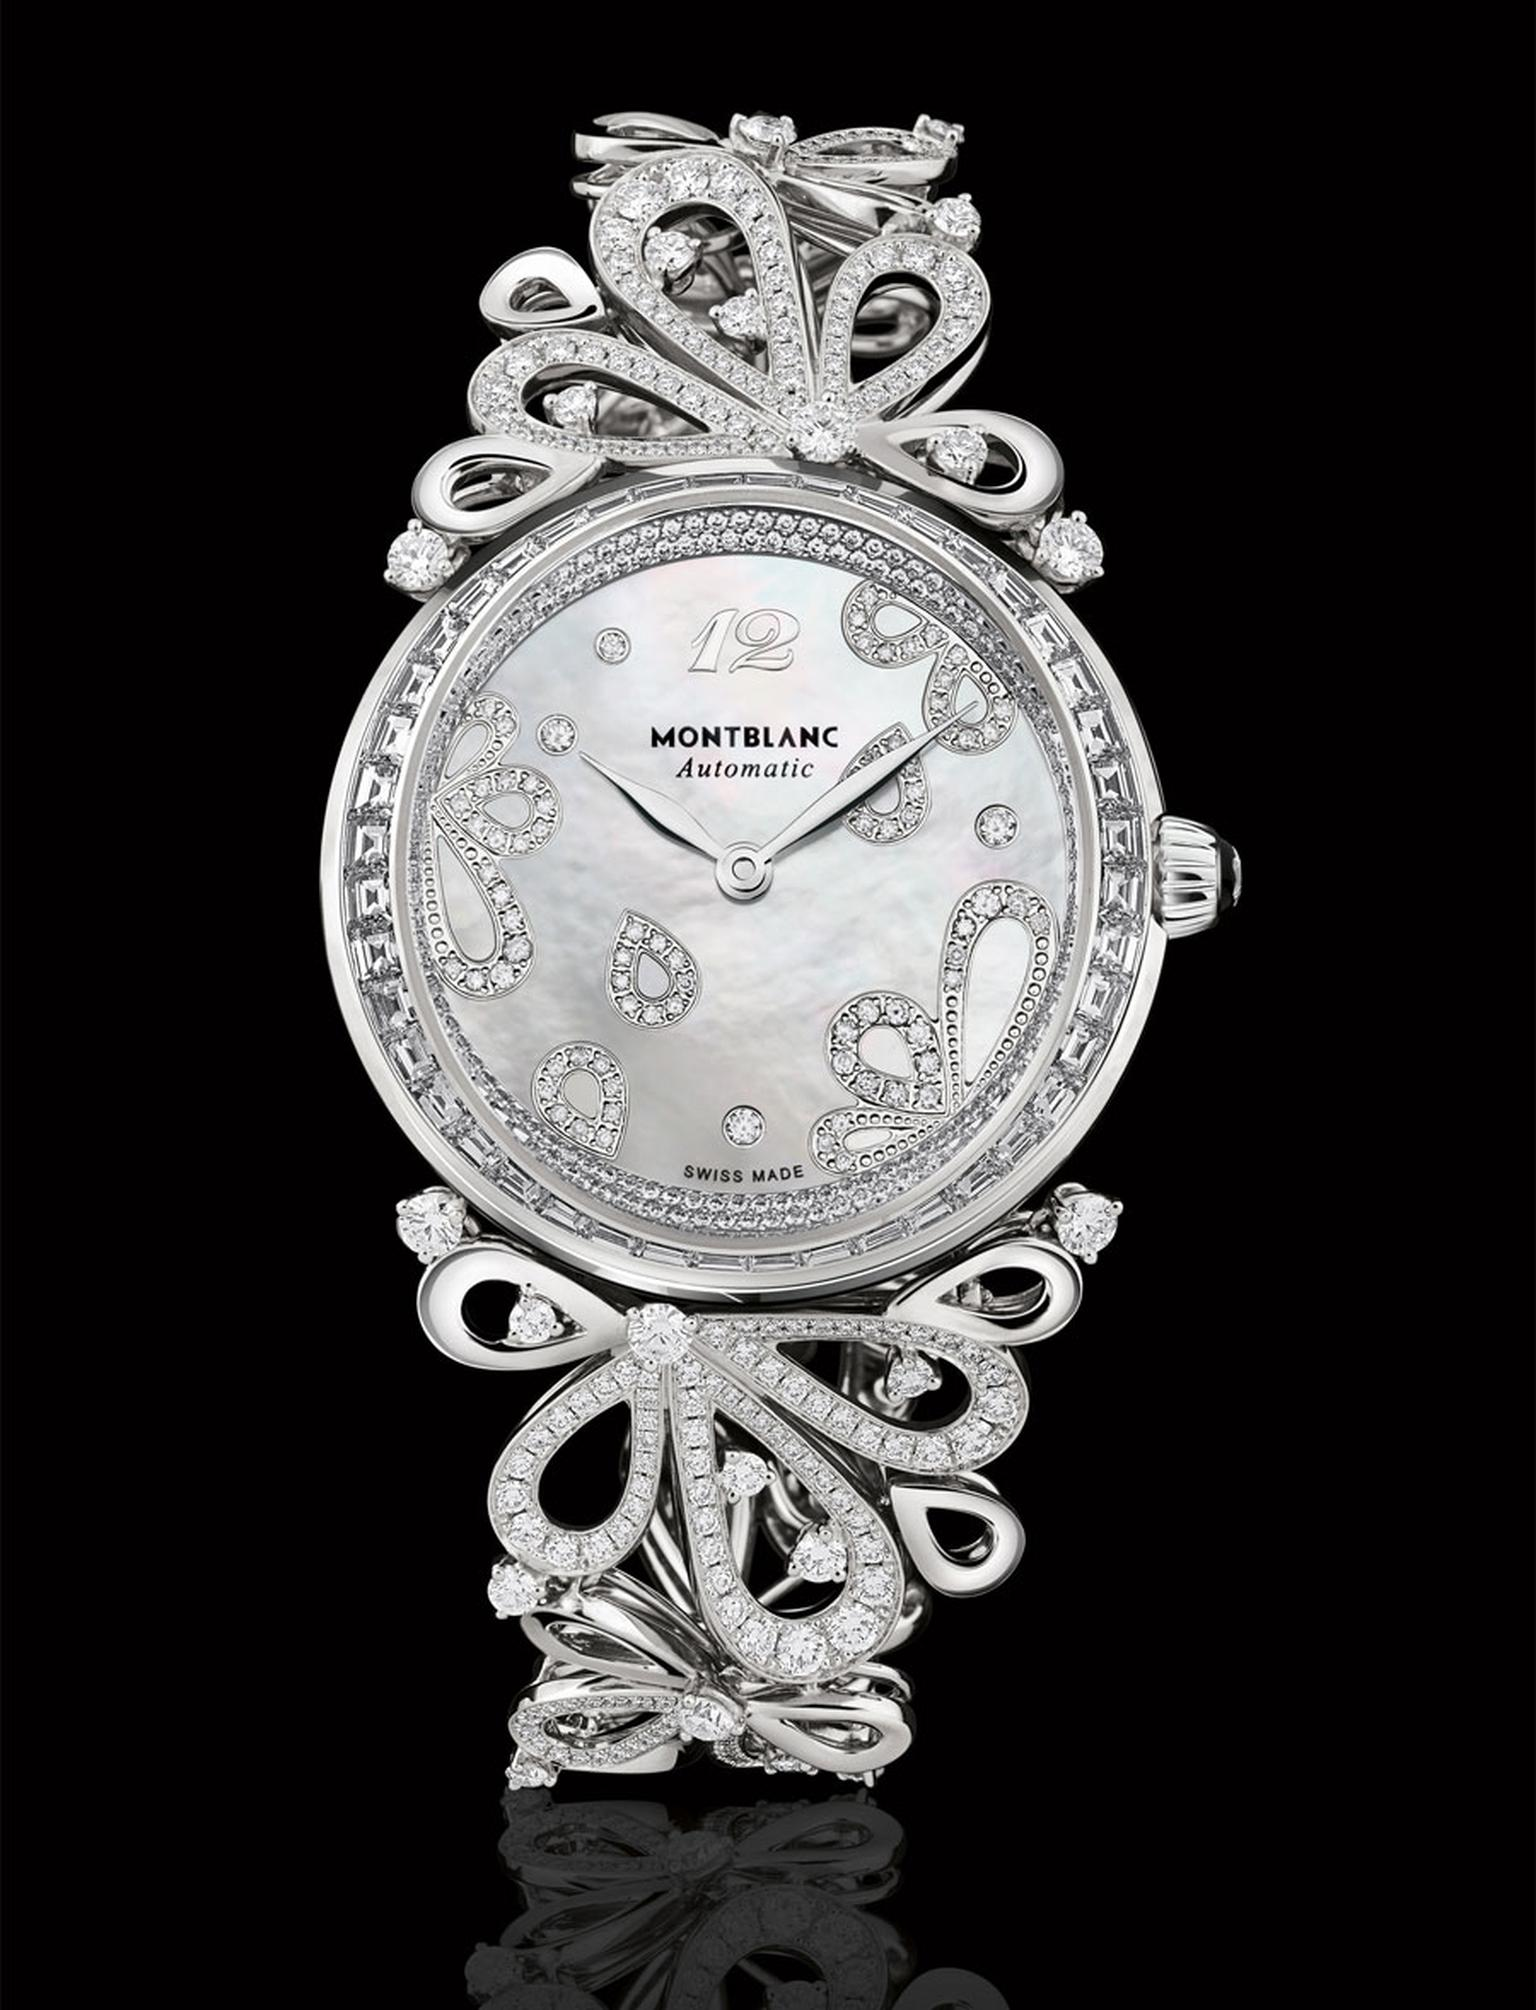 Monaco-Collection-Princesse-Grace-de-Monaco_Petales-de-Roses_white-gold_mood.jpg